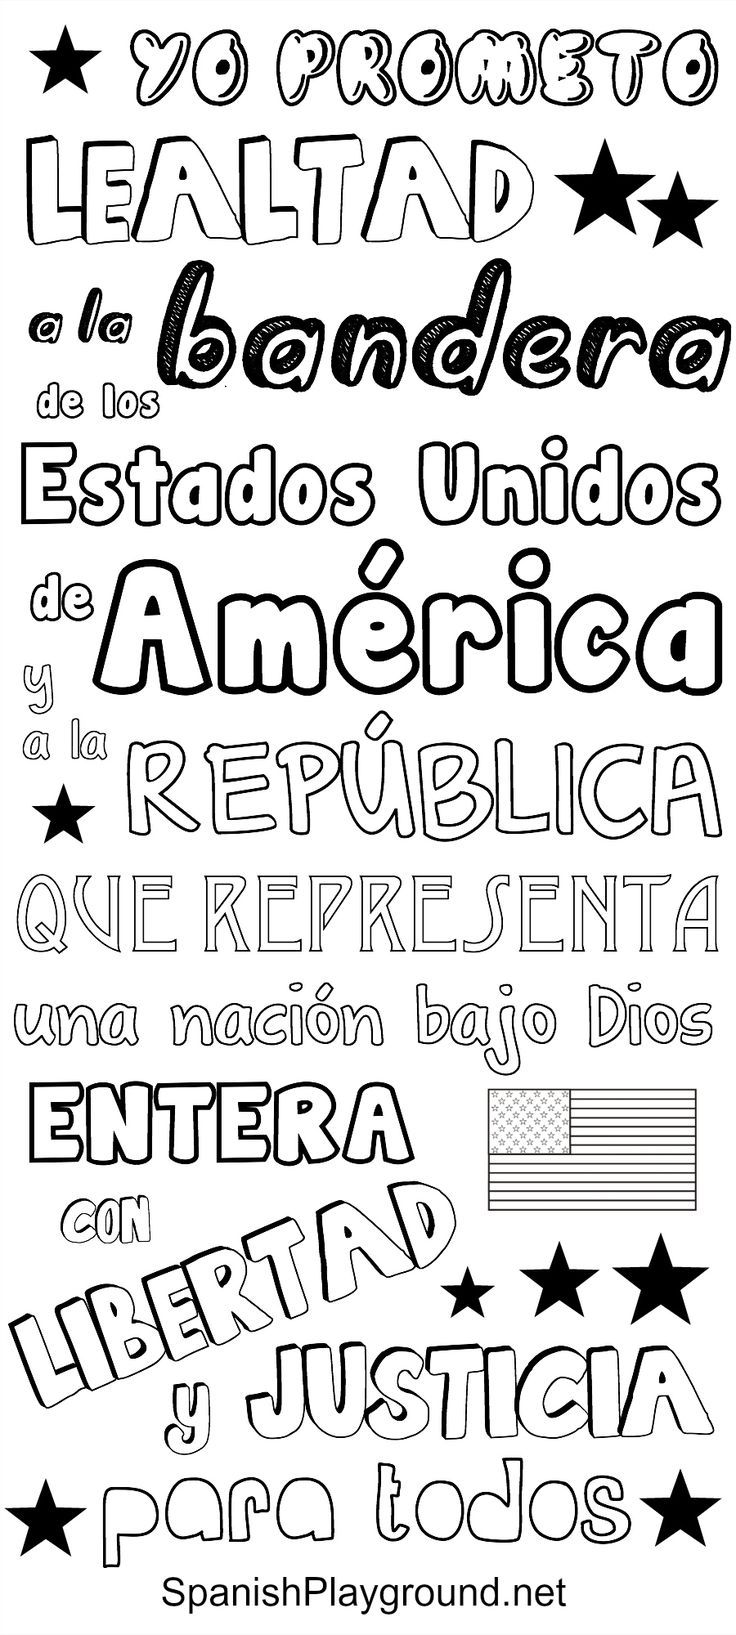 Adult Top Pledge Of Allegiance Coloring Page Images beauty 1000 ideas about pledge of allegiance words on pinterest presidents day american symbols and week images